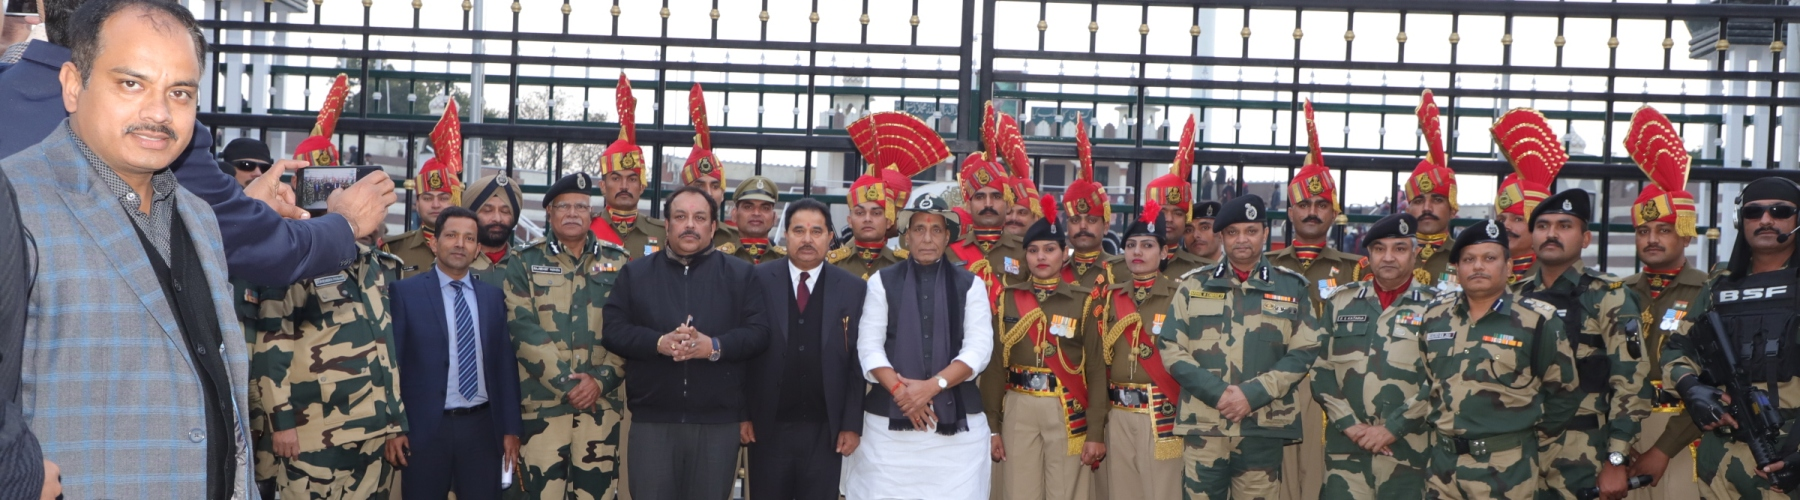 The Union Home Minister Shri Rajnath Singh launching the Emergency Response Support System (ERSS) for Himachal Pradesh at Mandi on November 28, 2018. The  Chief Minister of Himachal Pradesh, Shri Jai Ram Thakur is also seen.